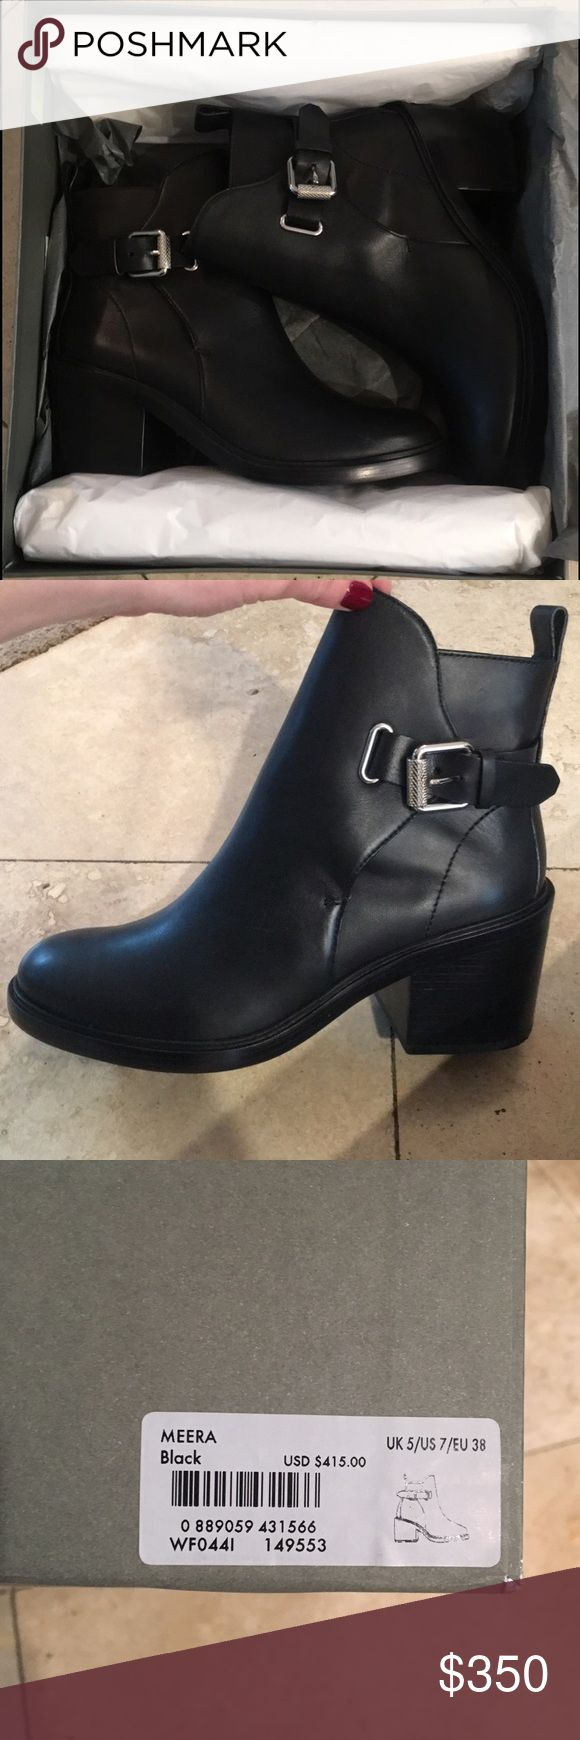 BRAND NEW ALLSAINTS BOOTS Meera black ALLSAINTS booties// never been worn! Leave comments below for any questions!! Xo All Saints Shoes Heeled Boots